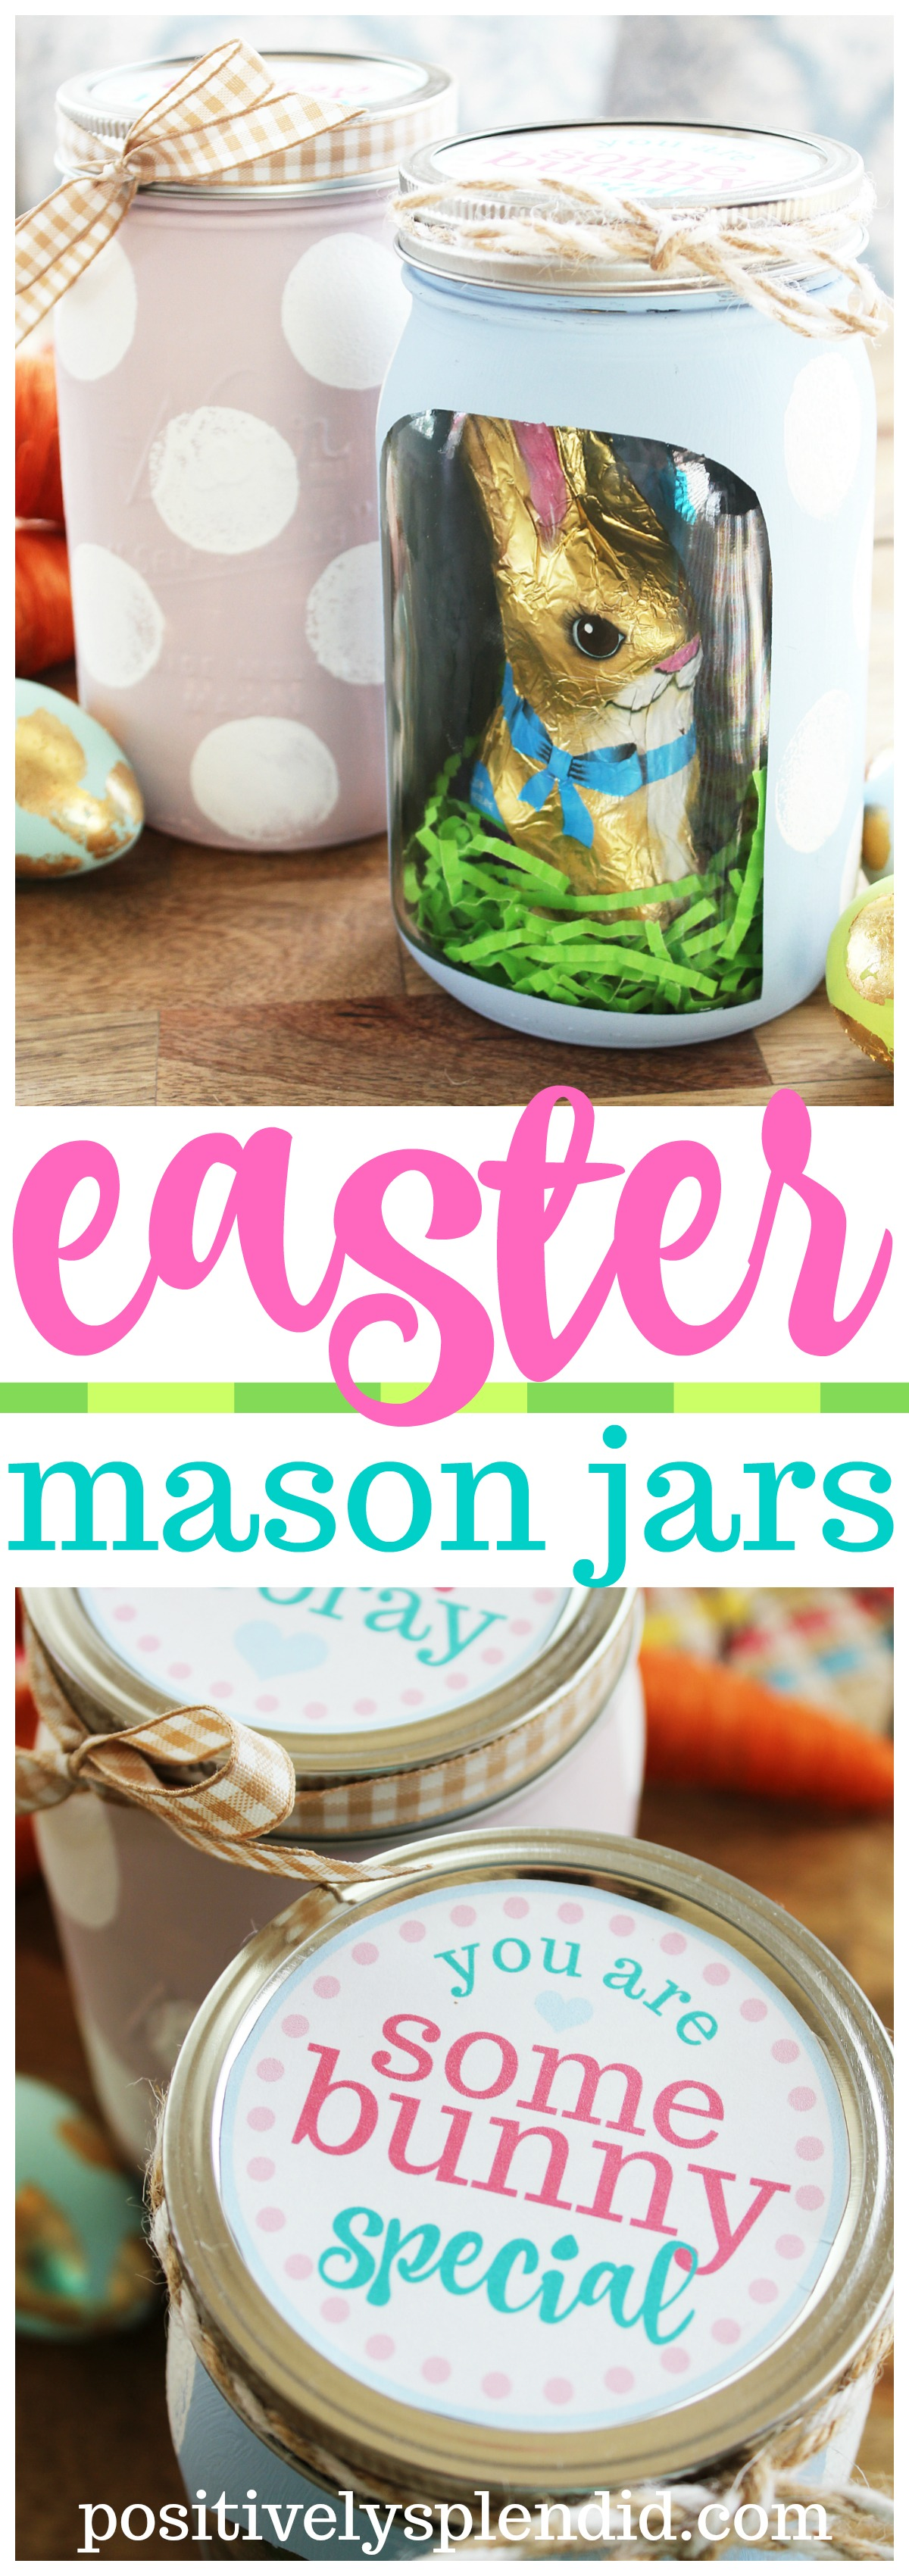 Polka Dotted Easter Mason Jar - So cute with a chocolate bunny inside!